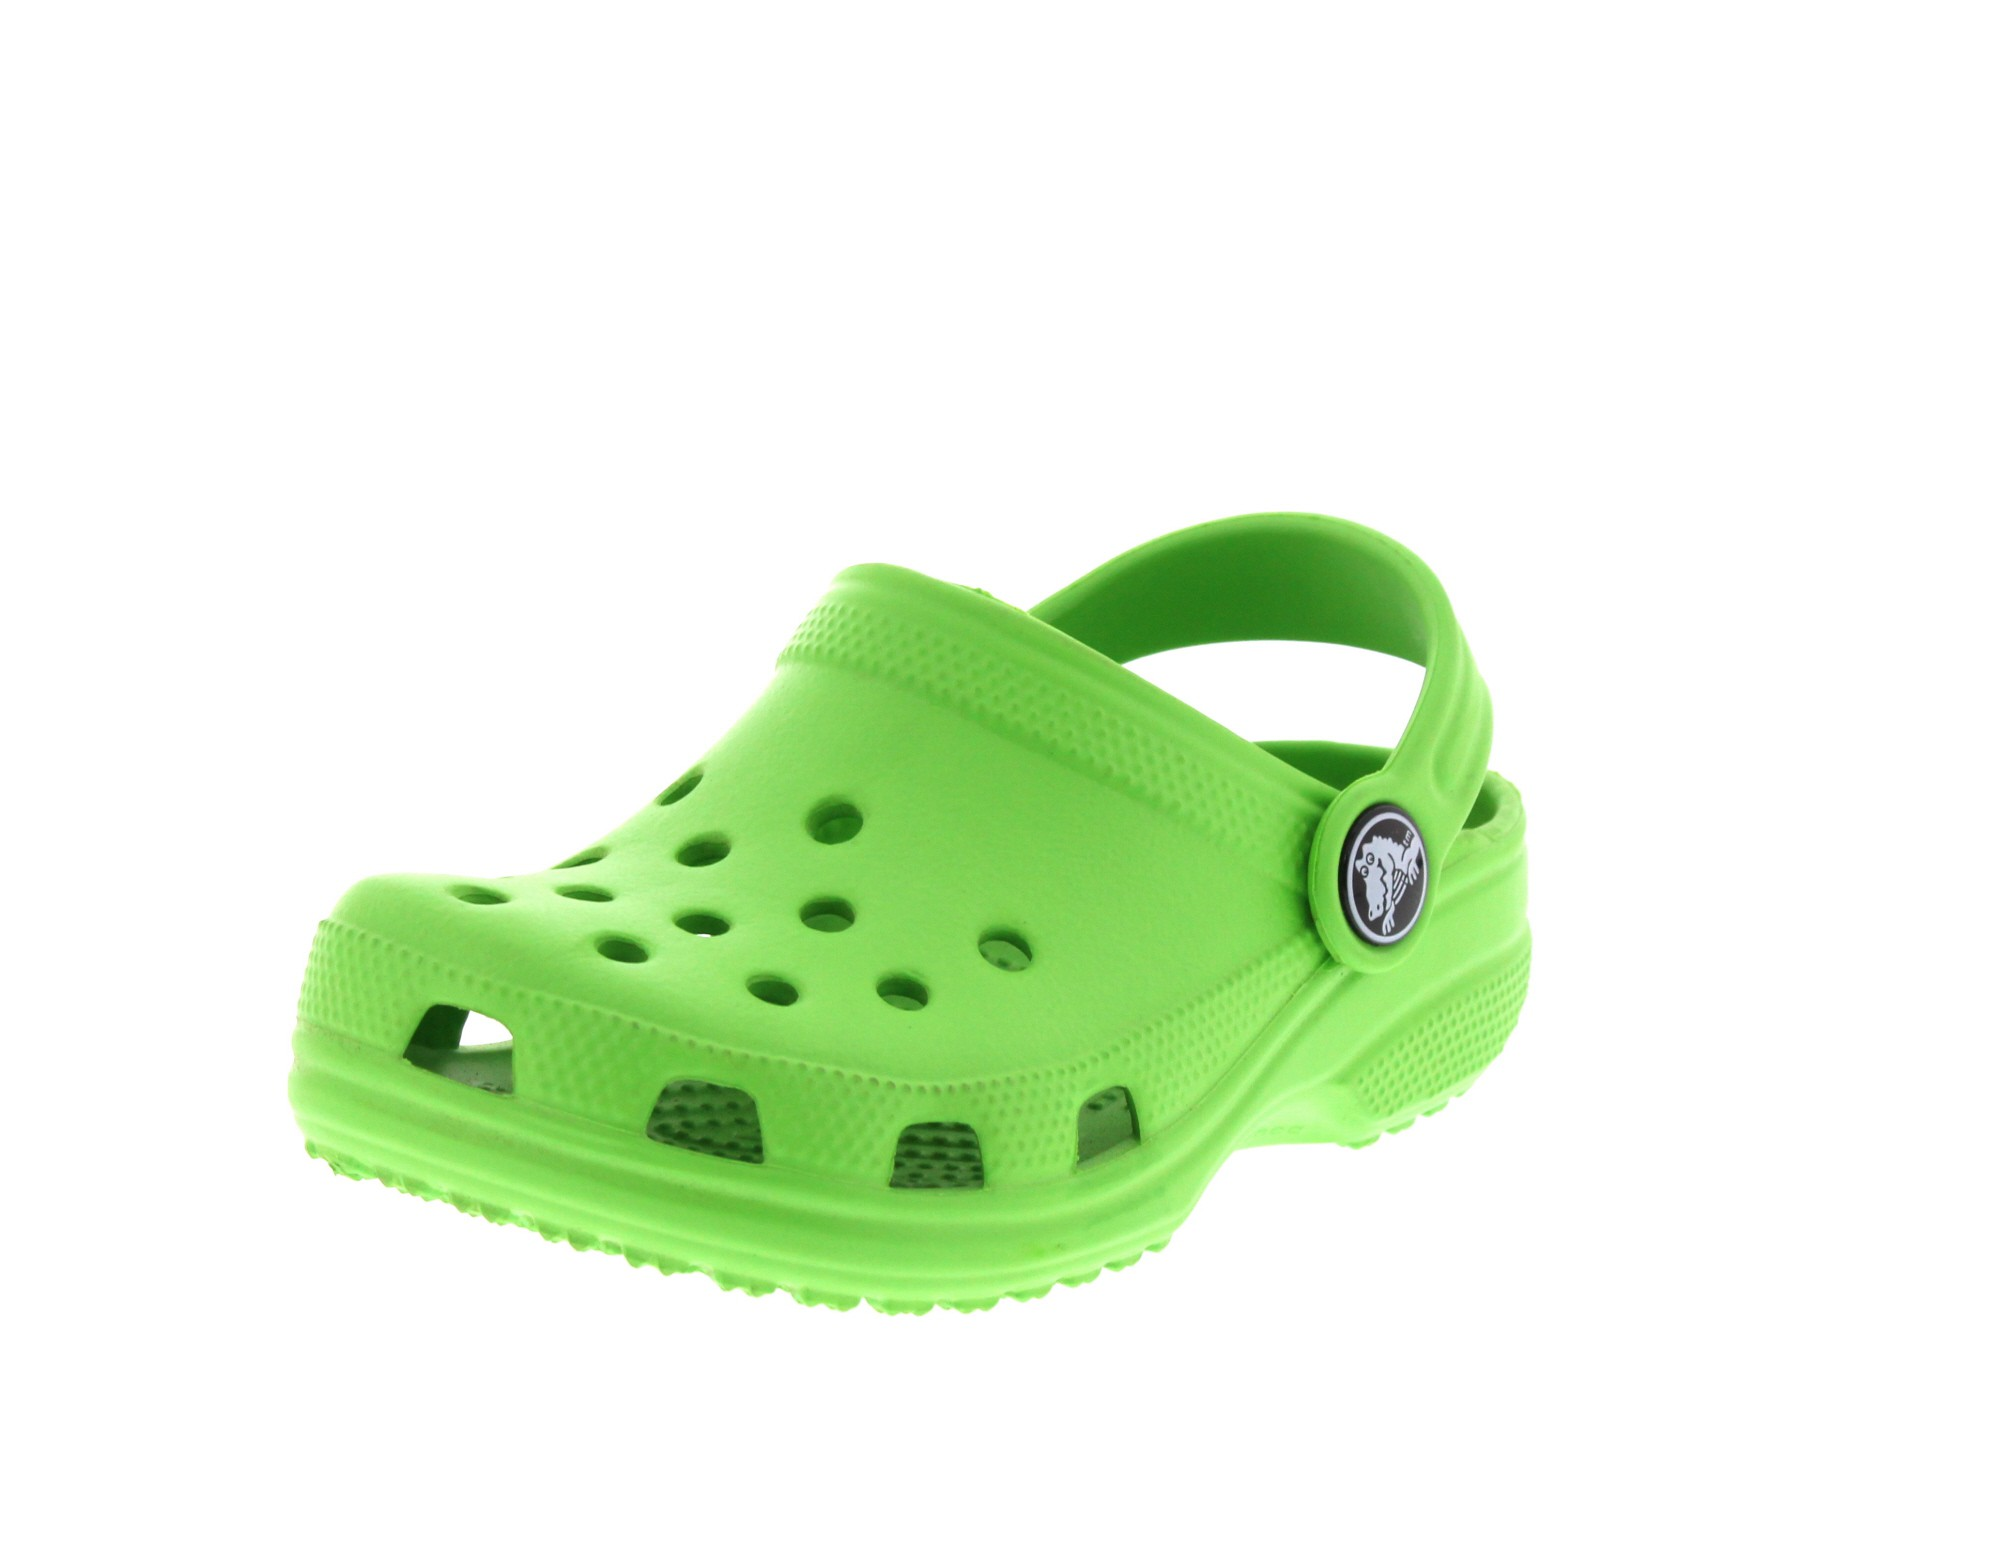 CROCS Kinderschuhe - Clogs CLASSIC KIDS - lime green0